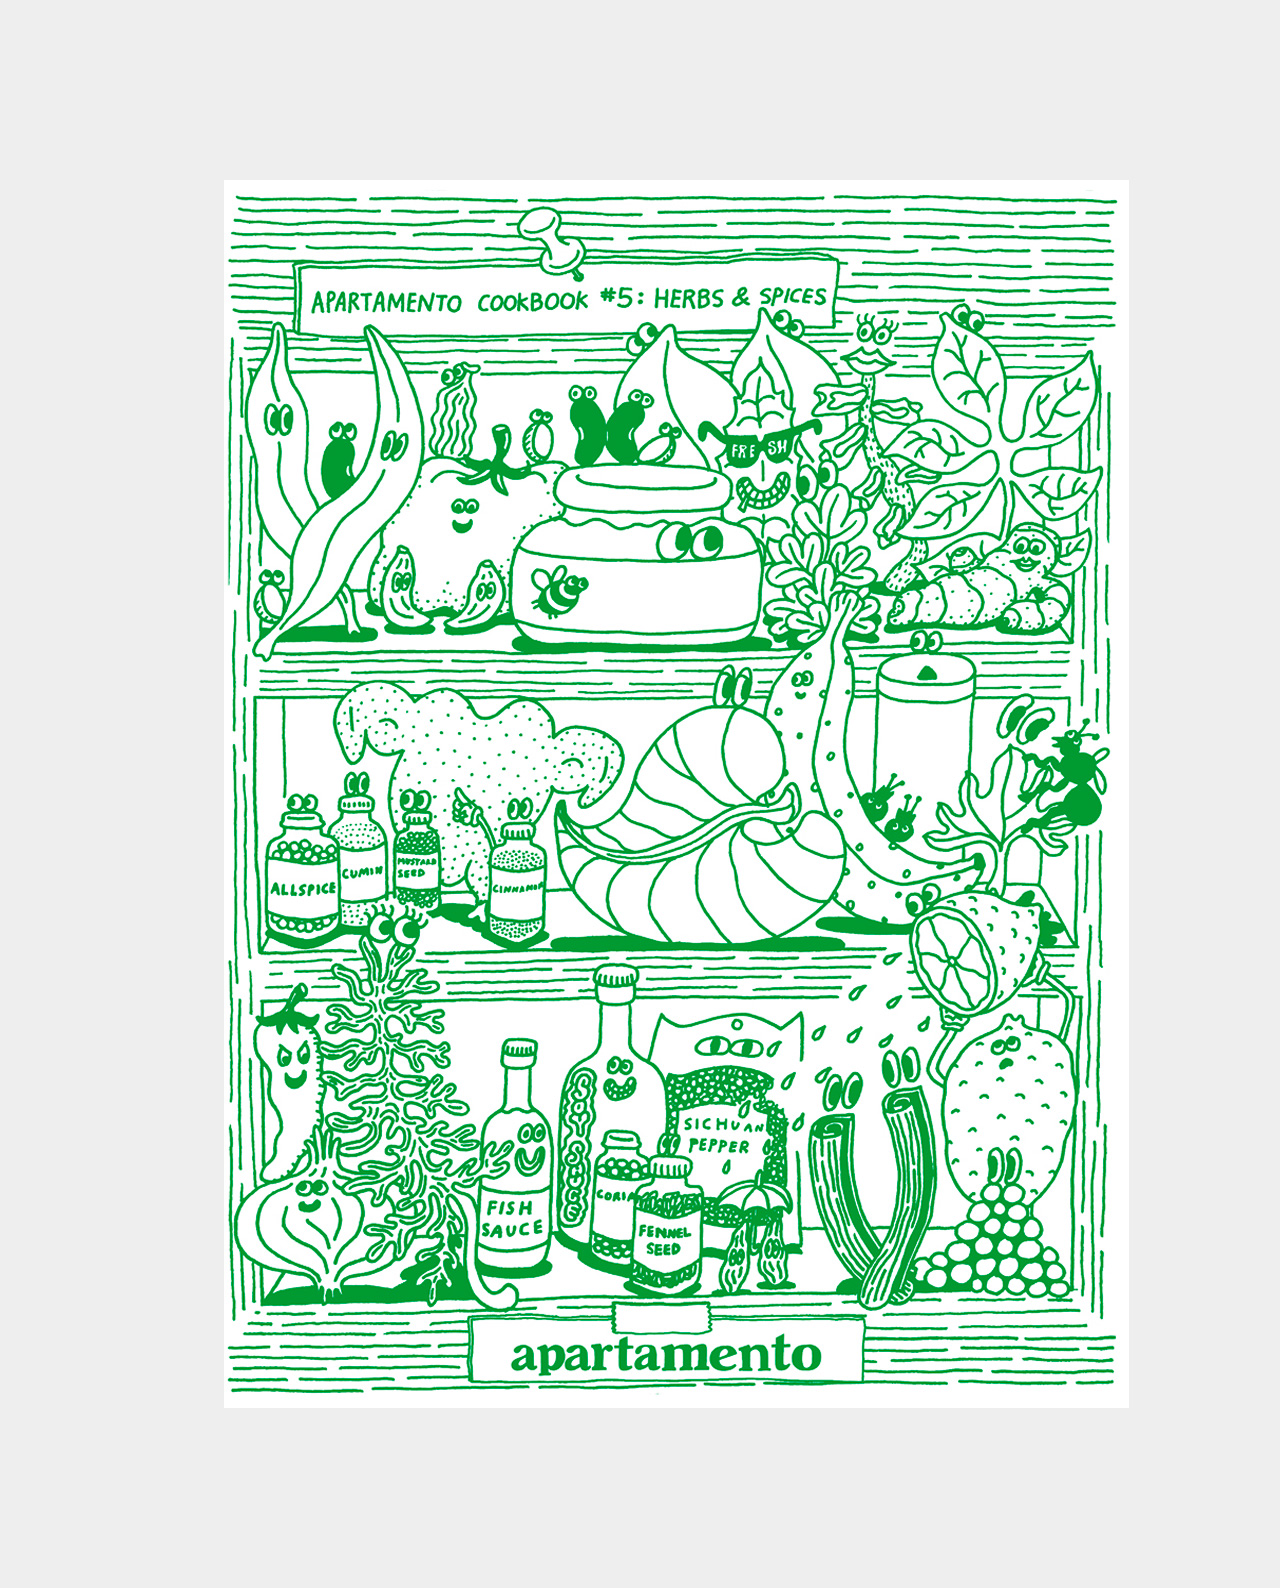 apartamento-cookbook5